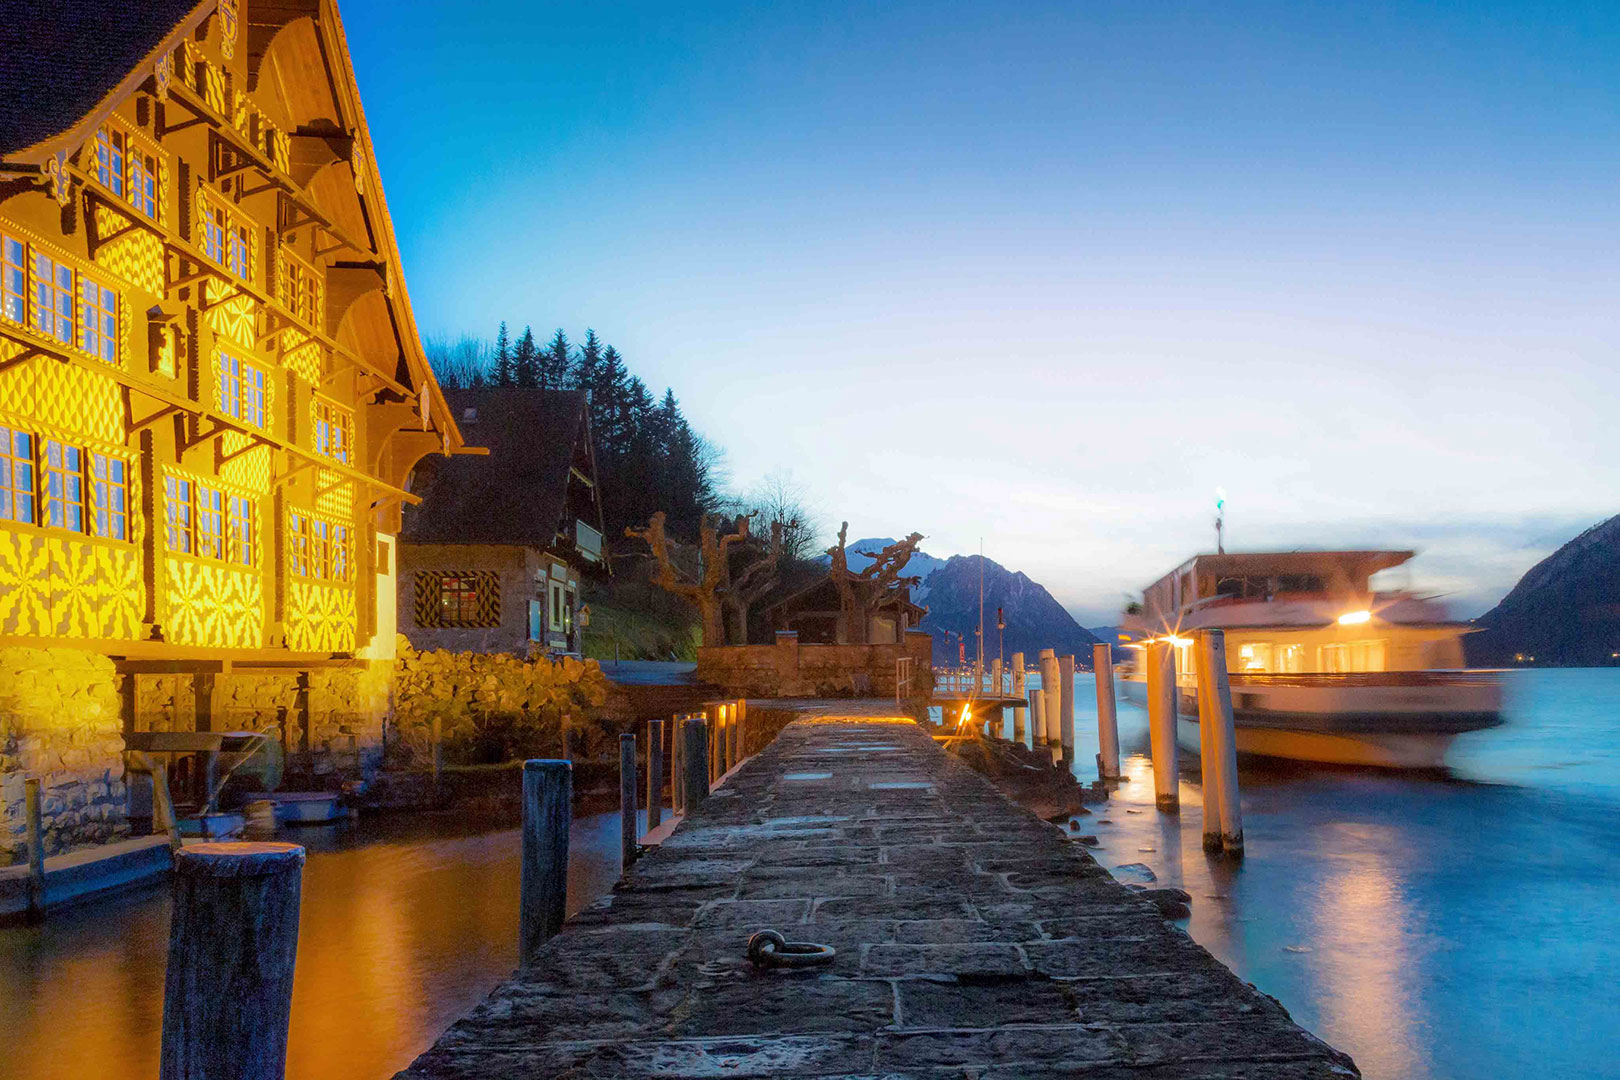 Picture of a dock at dusk on Lake Lucerne, Canton Uri, Switzerland